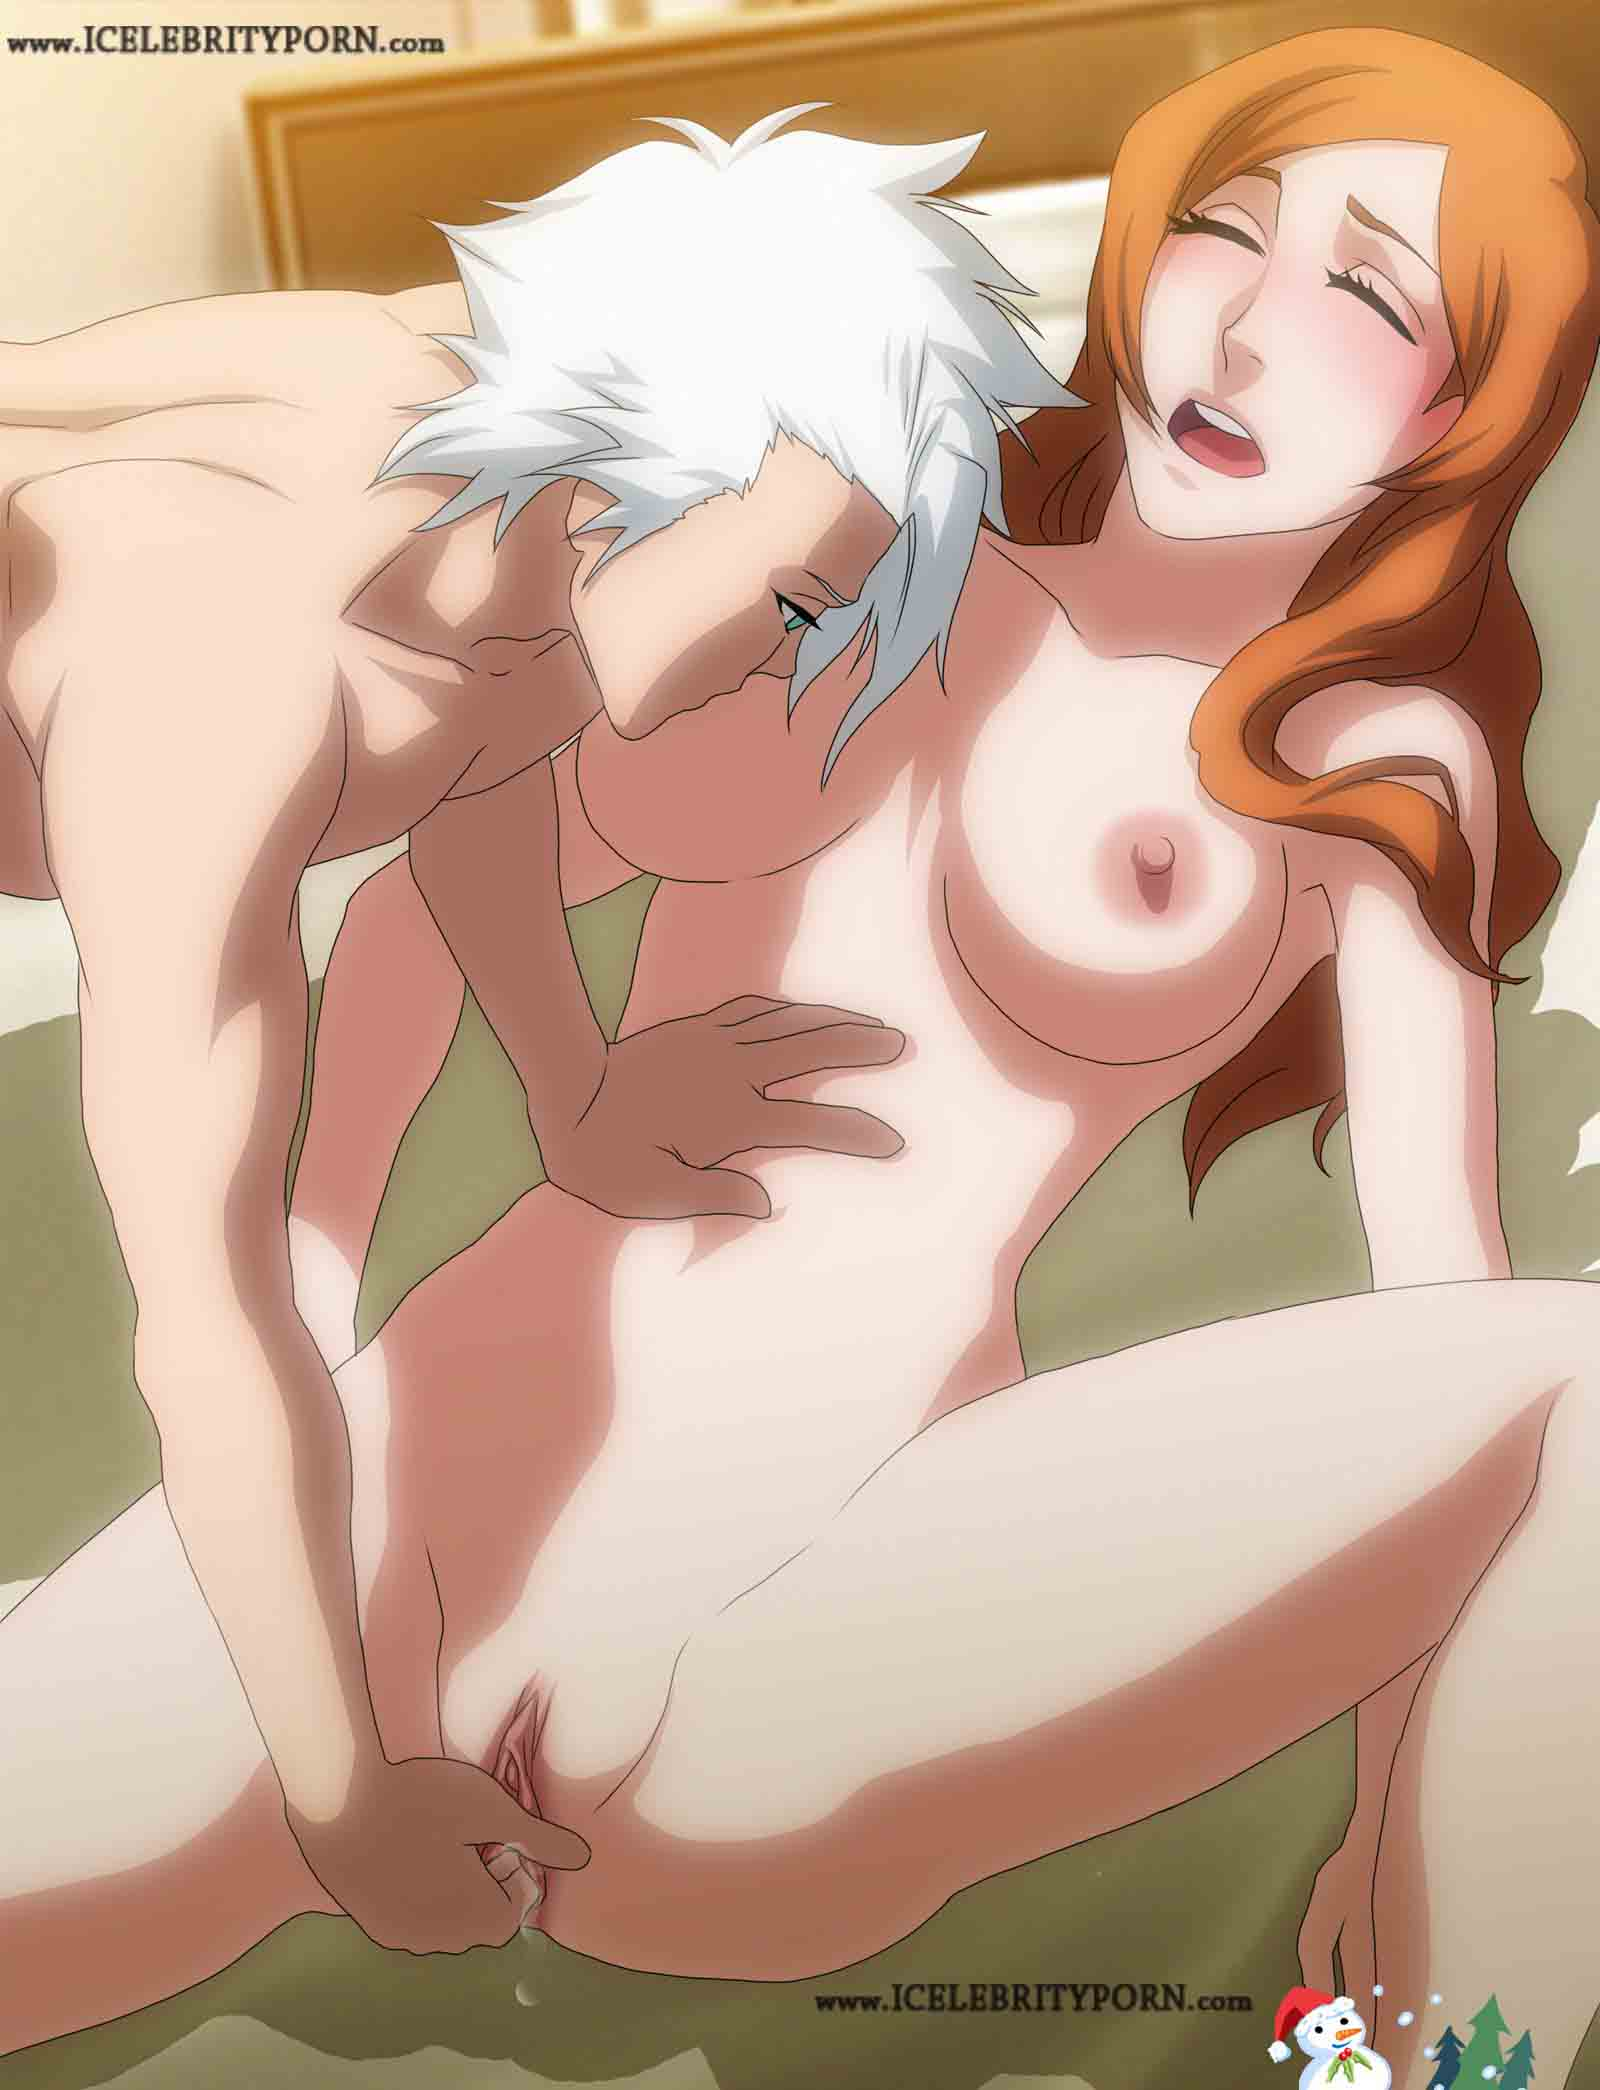 Anime Porn Humping anime sex porn cartoons com >> expiring desires, clockwork